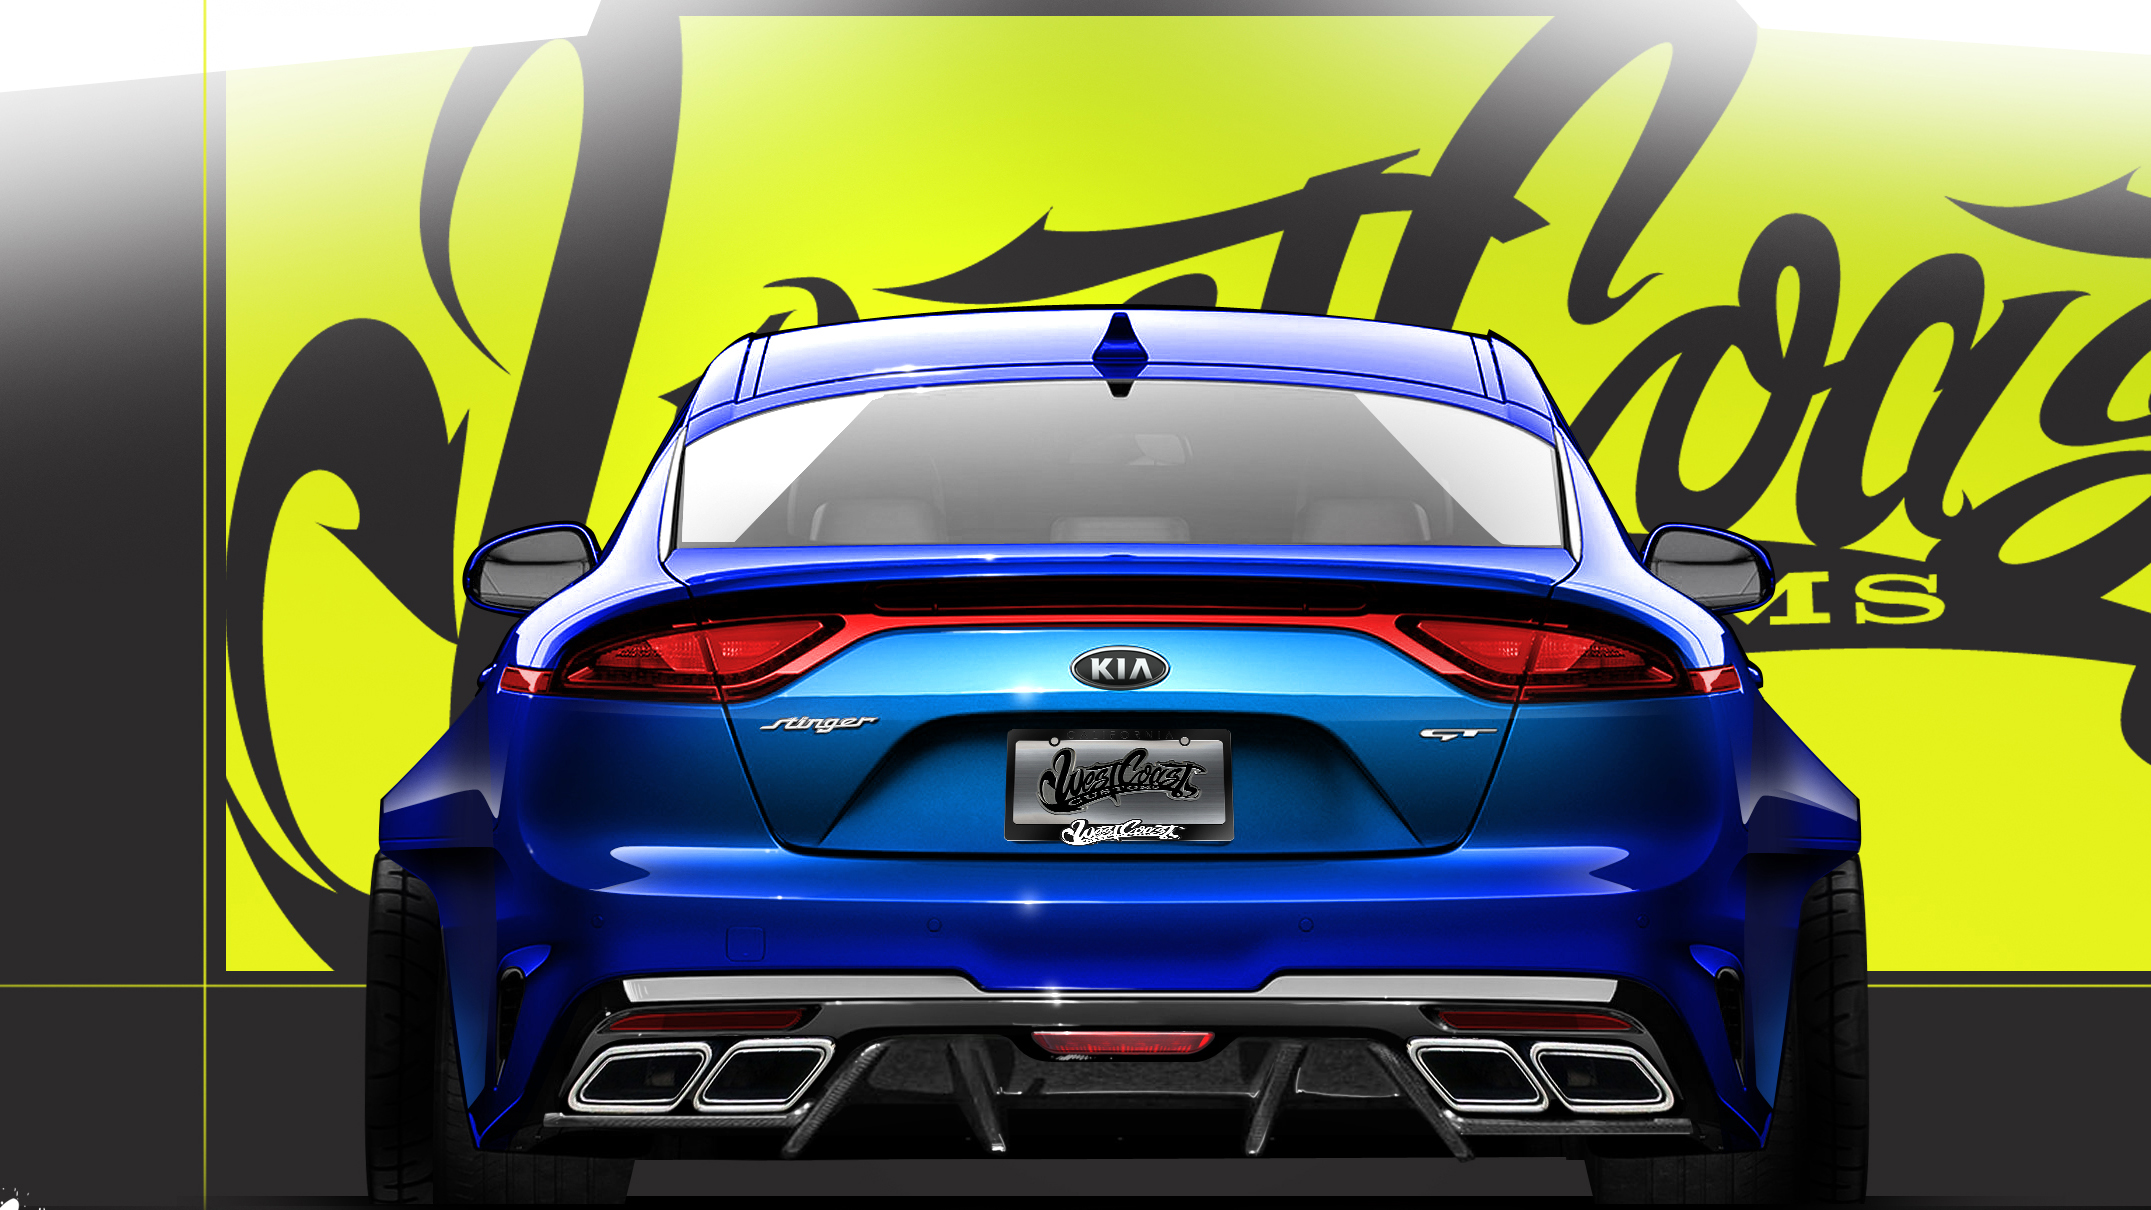 Coast High Performance >> This is the West Coast Customs-modified Kia Stinger | Top Gear